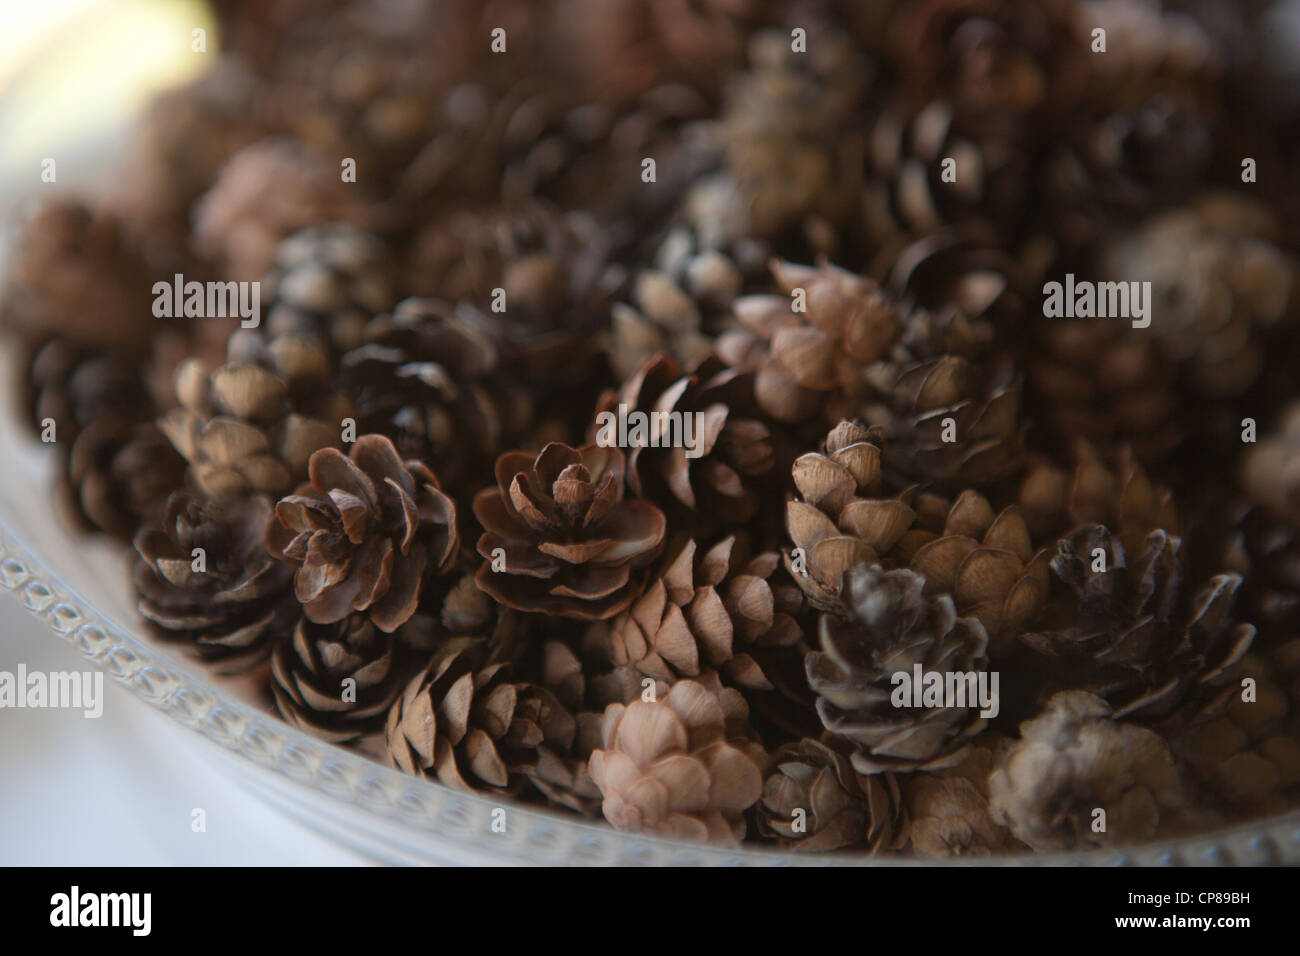 Close up of small pinecones in a bowl. - Stock Image